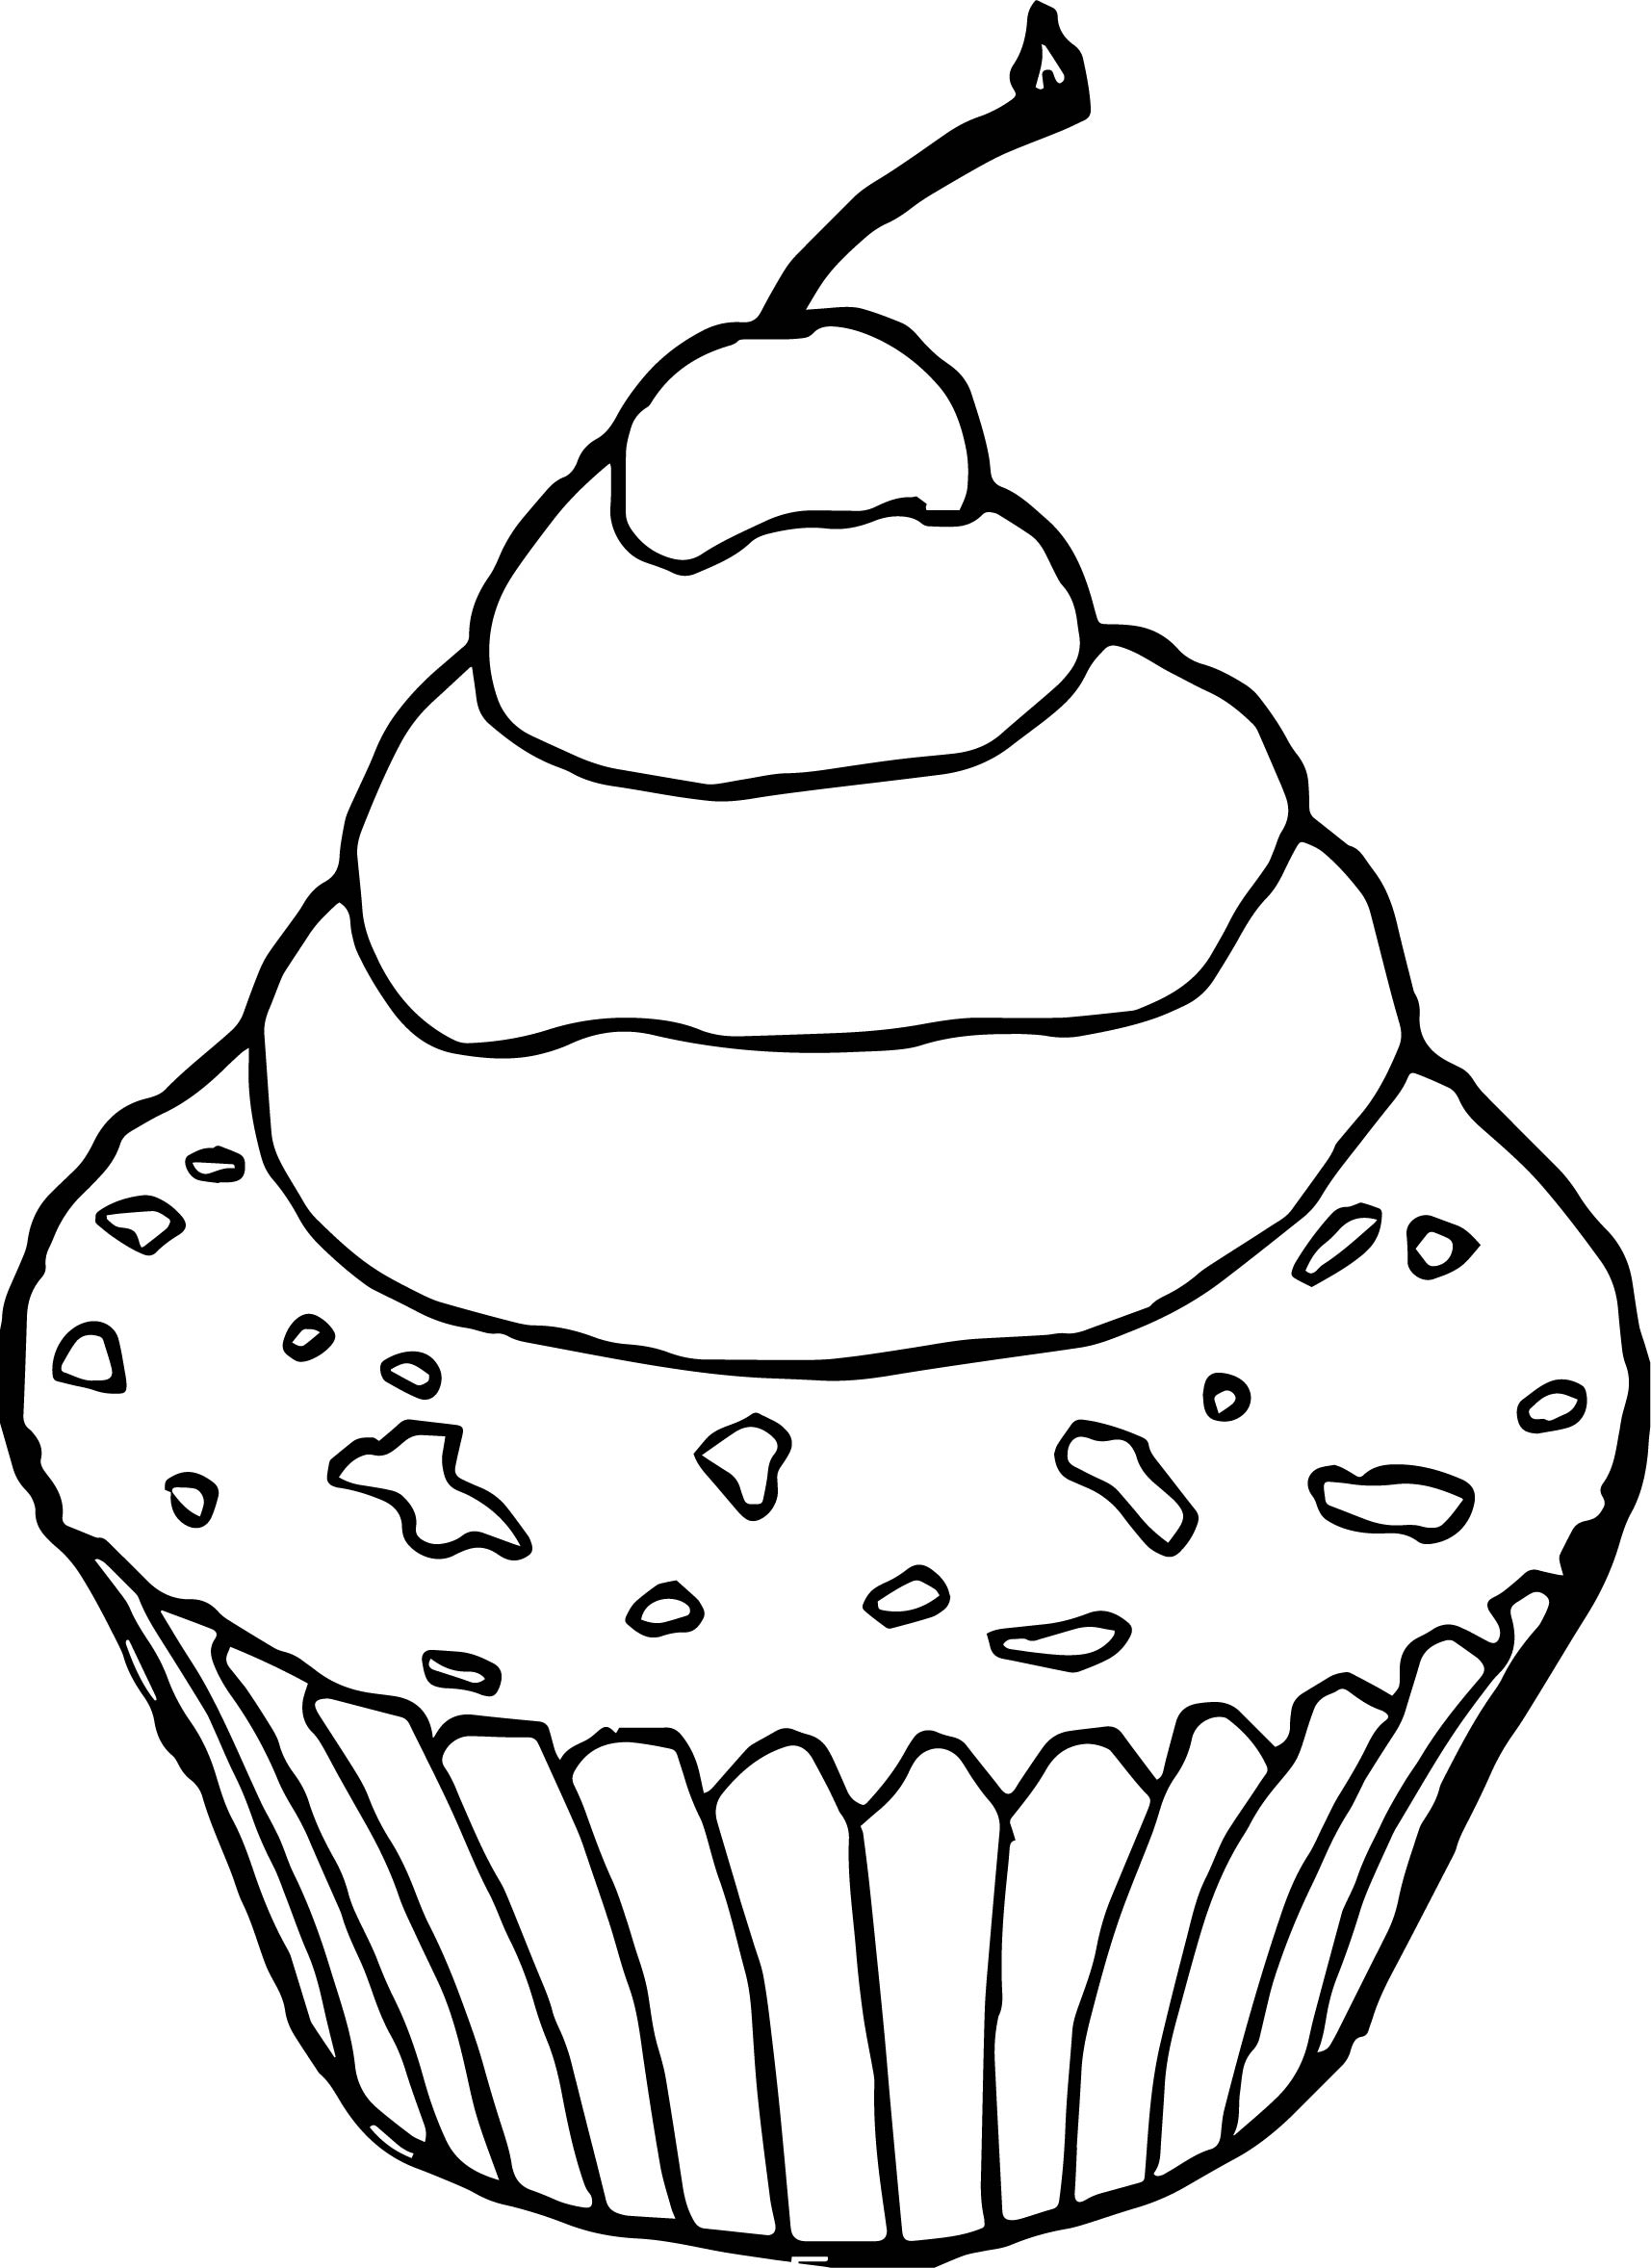 Chocolate cupcake pictures cherry coloring page for Cupcake color pages